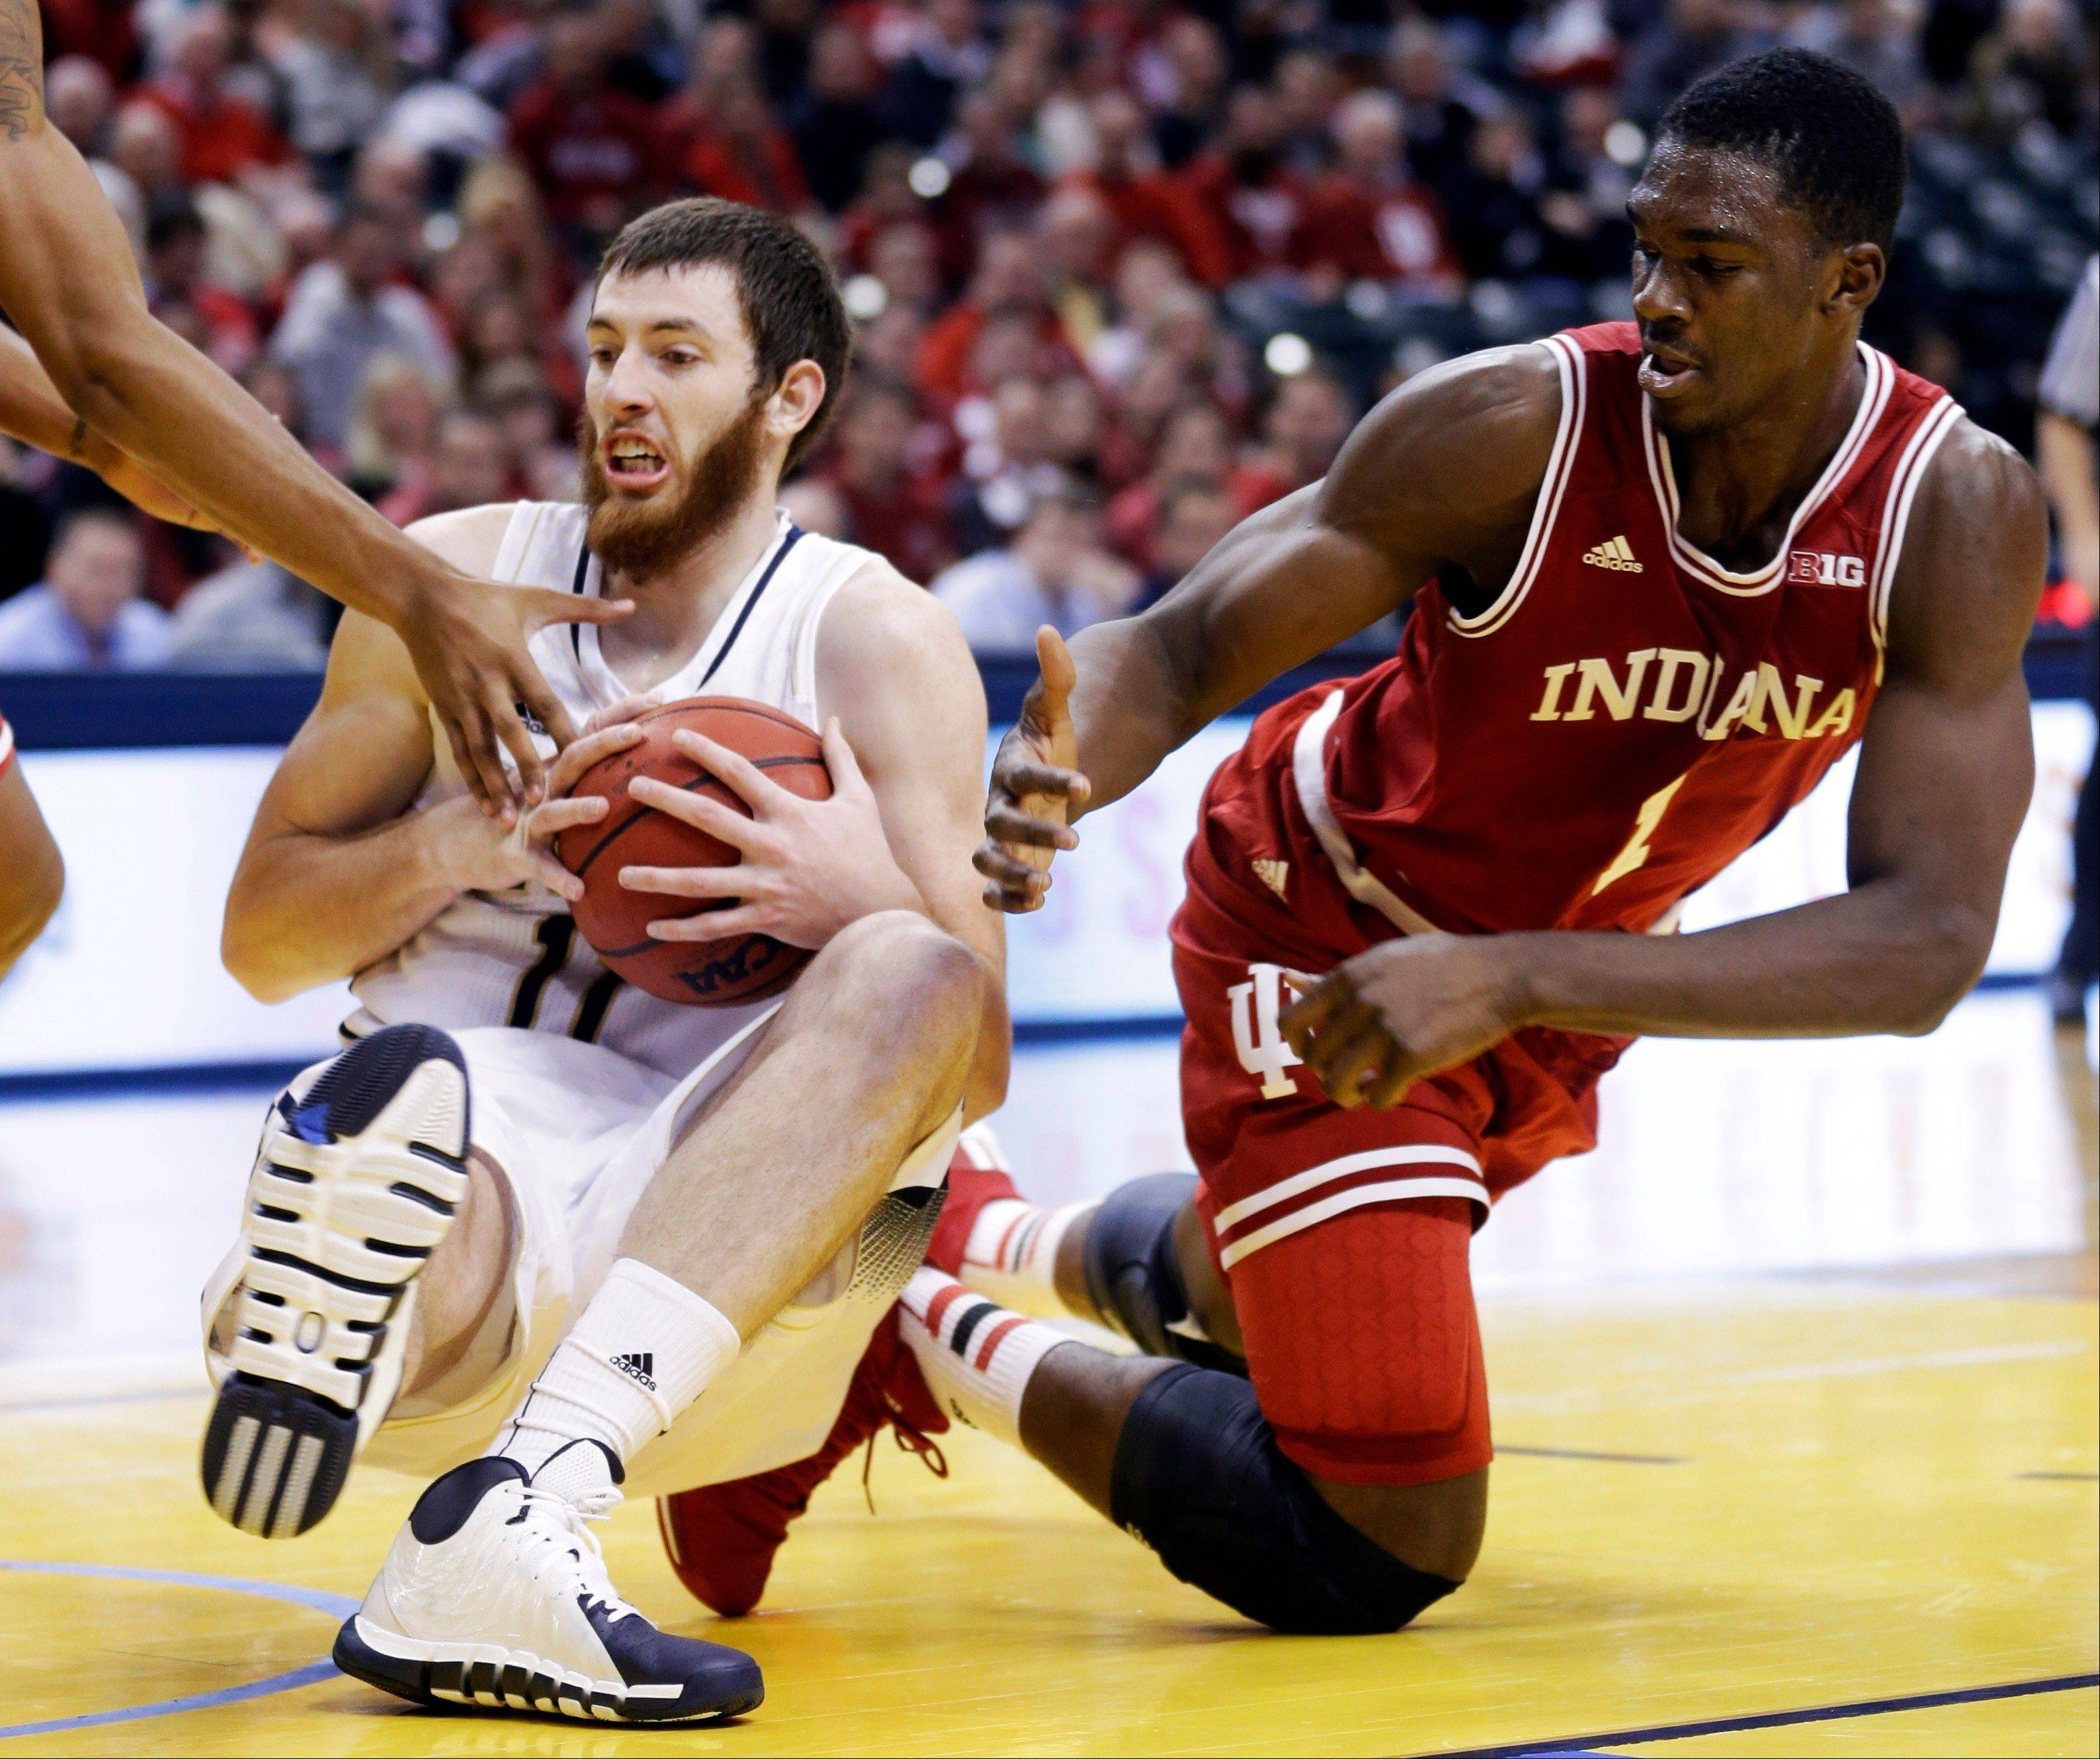 Notre Dame center Garrick Sherman, left, and Indiana forward Noah Vonleh go to the floor for a loose ball in the first half of an NCAA college basketball game in Indianapolis, Saturday, Dec. 14, 2013. (AP Photo/Michael Conroy)